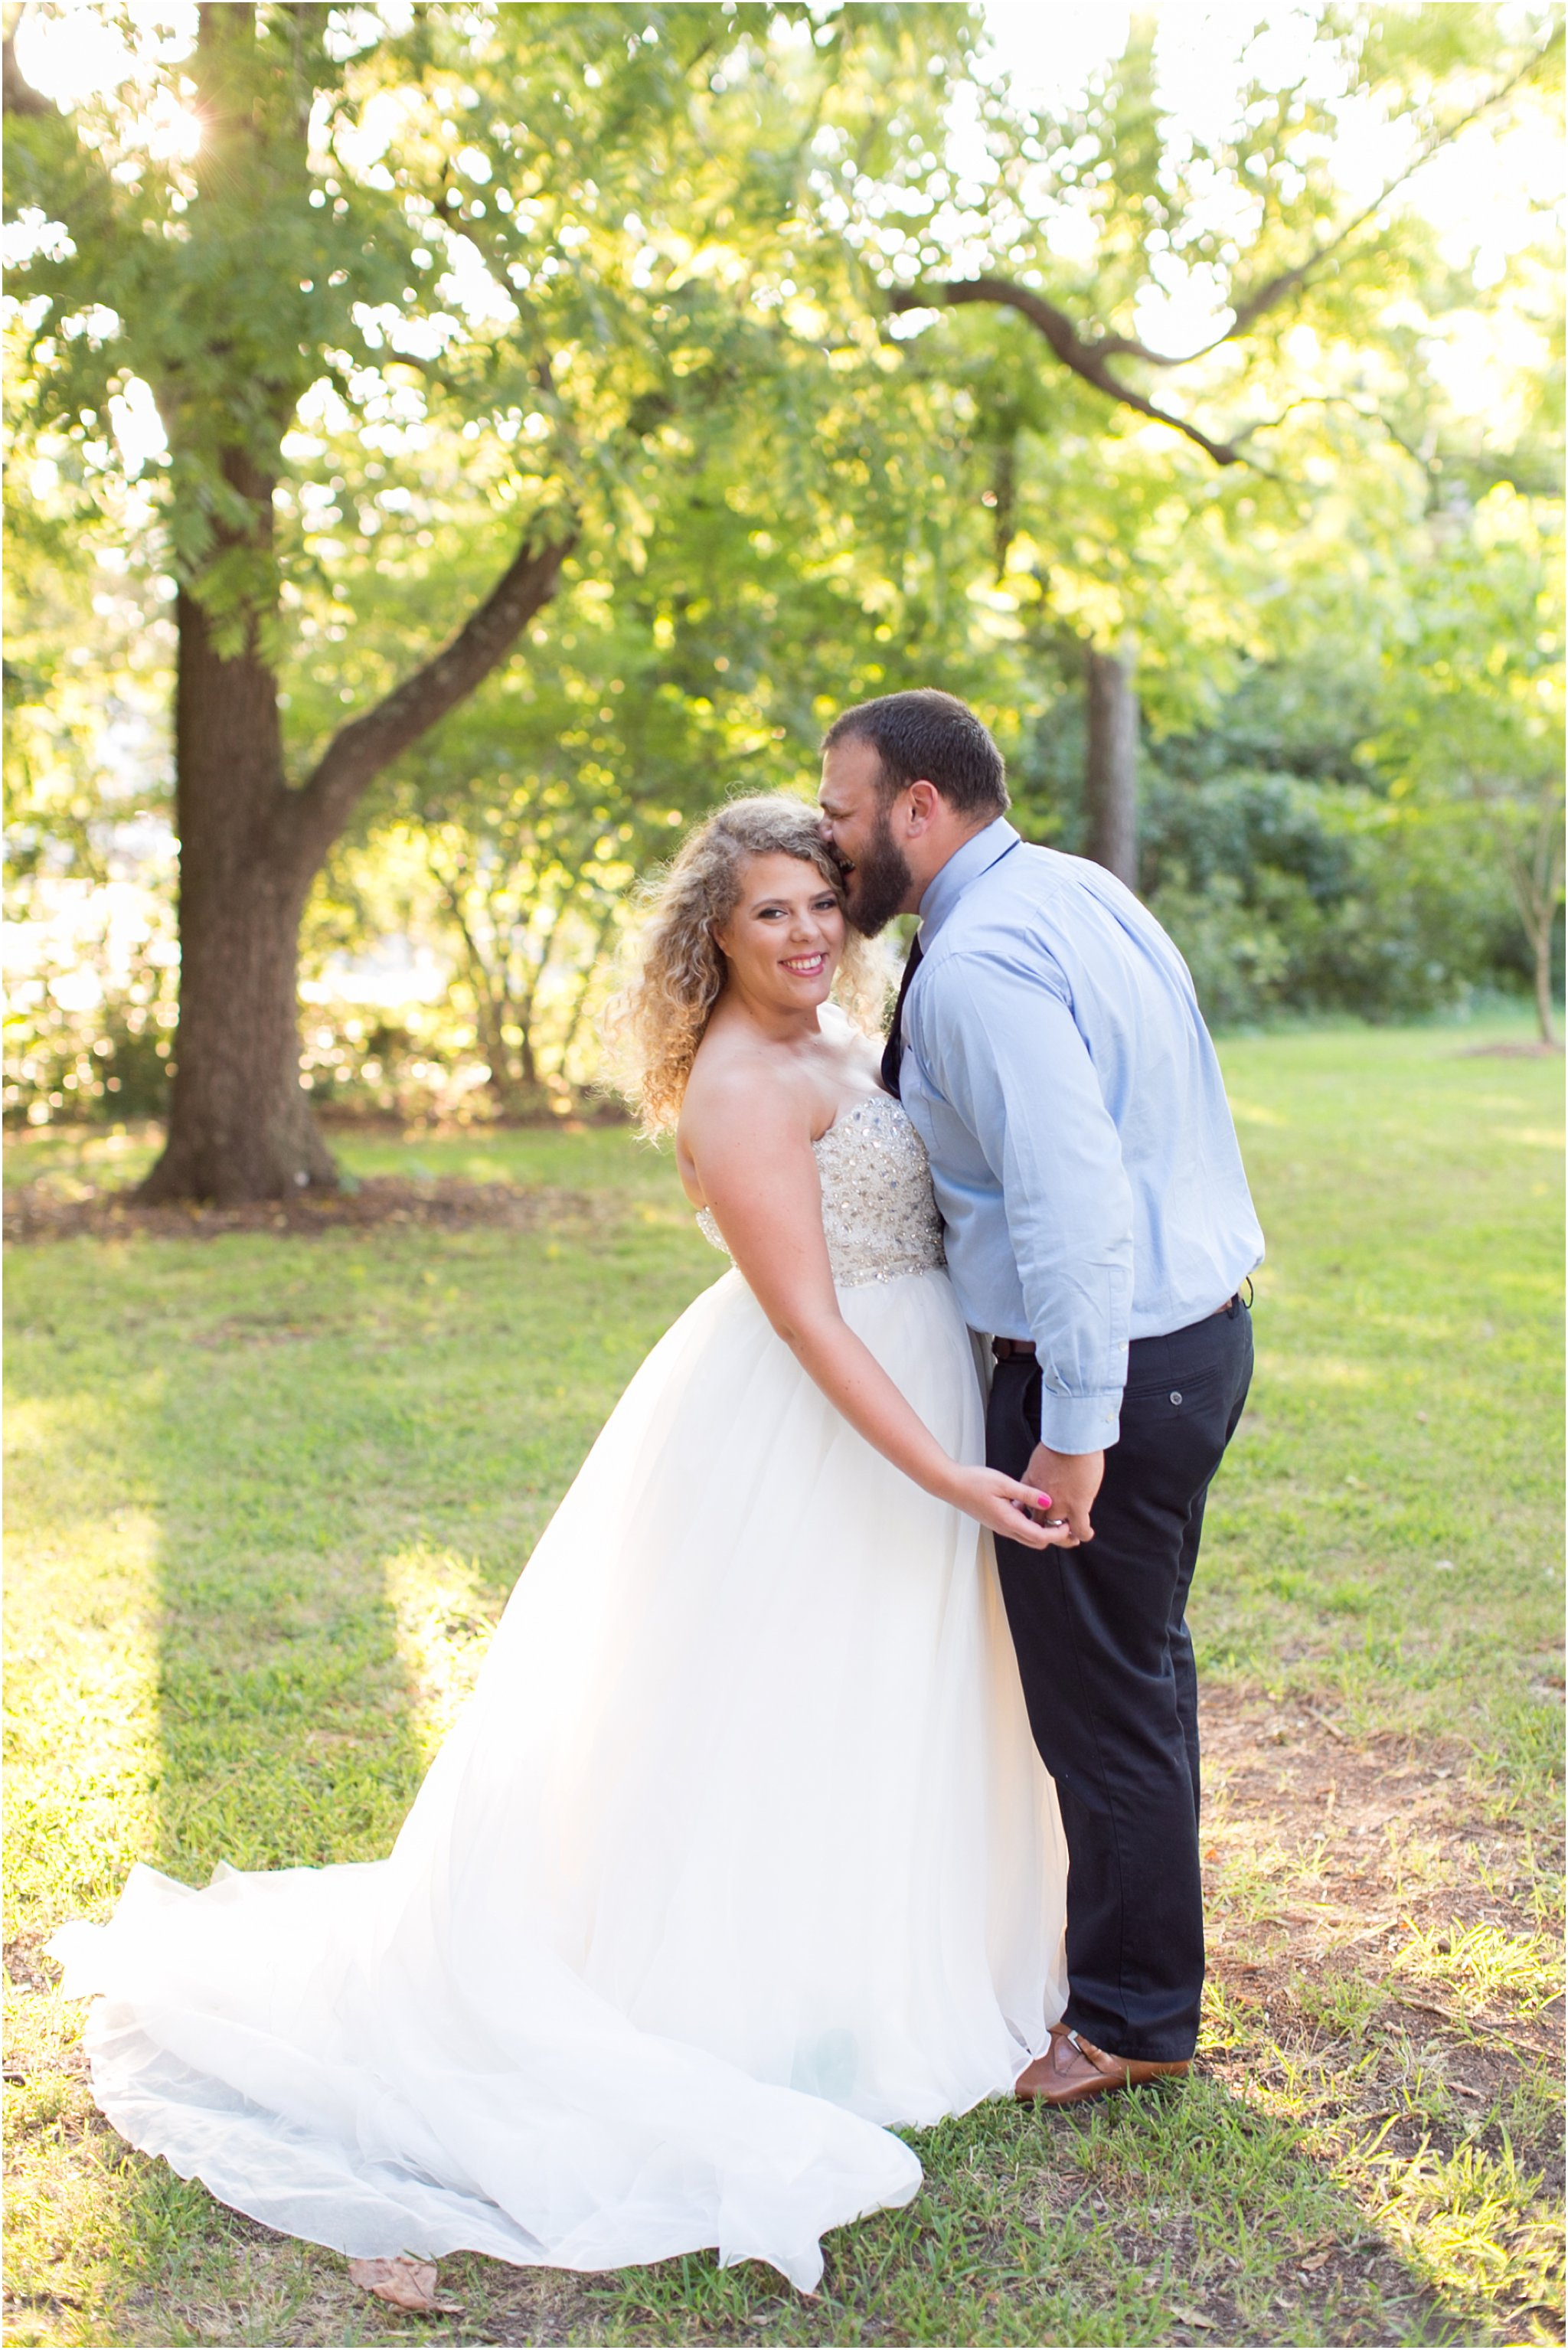 jessica_ryan_photography_virginia_virginia_beach_francis_land_house_portraits_anniversary_portraits_bride_and_groom_beloved_historical_home_wedding_2690